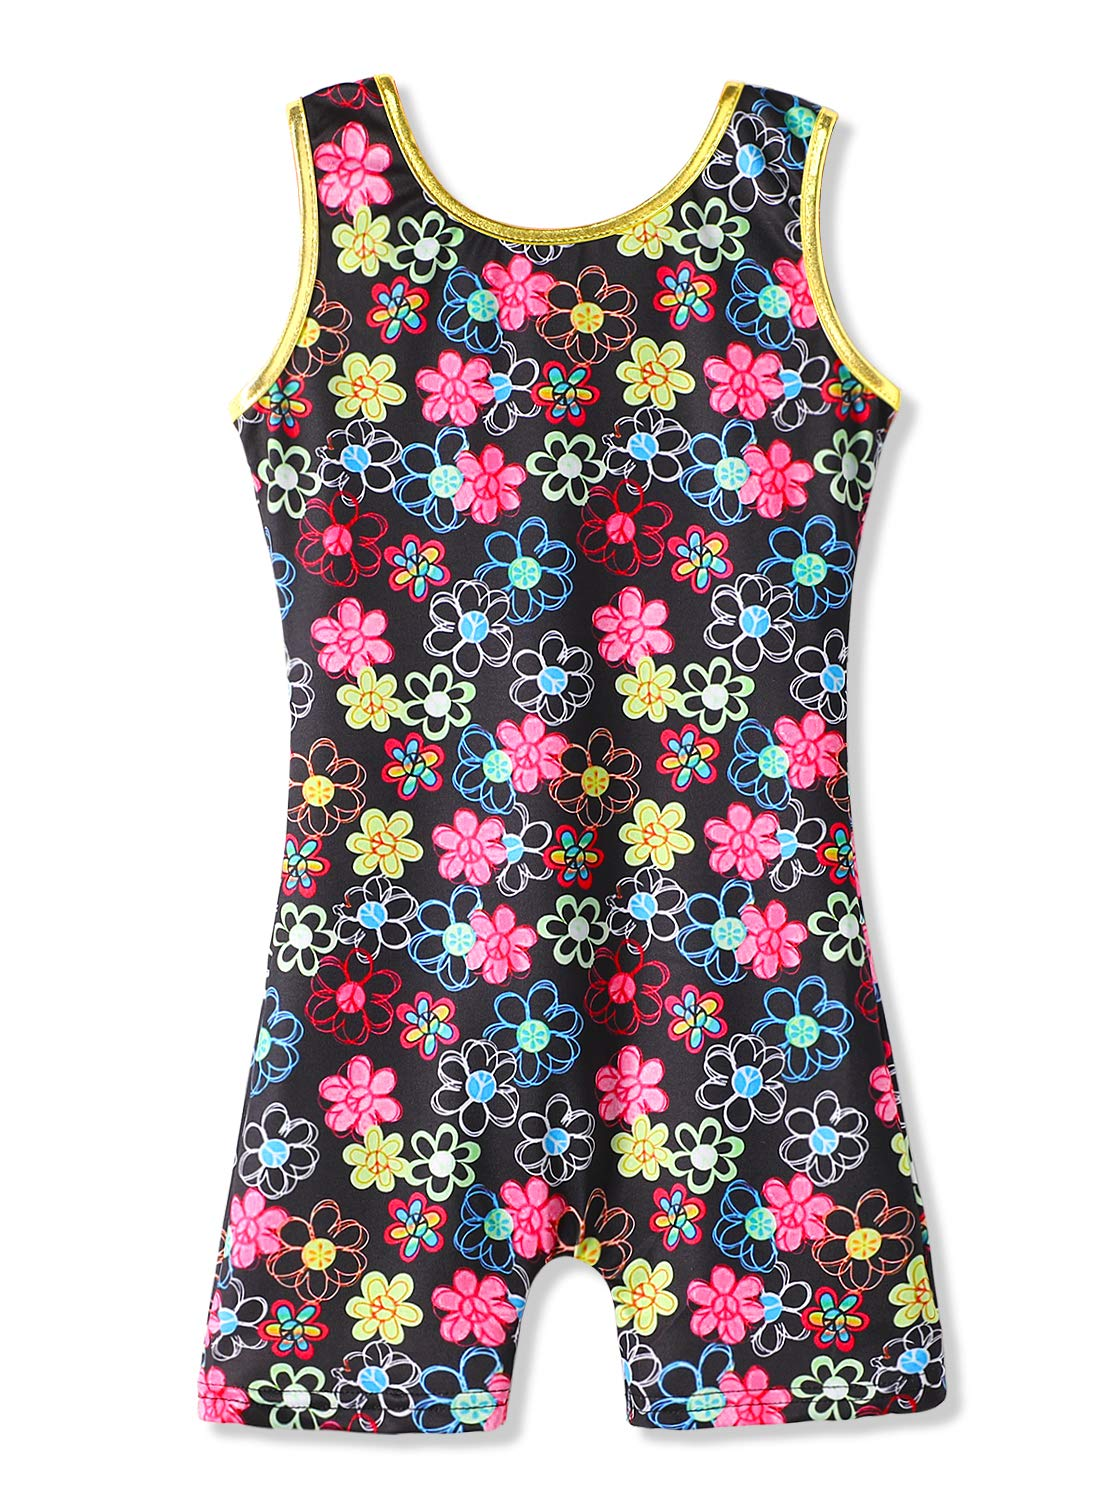 Gymnastics Leotards with Shorts for Girls Kids 7/8 Size 7-8 years old Floral Print by HOZIY